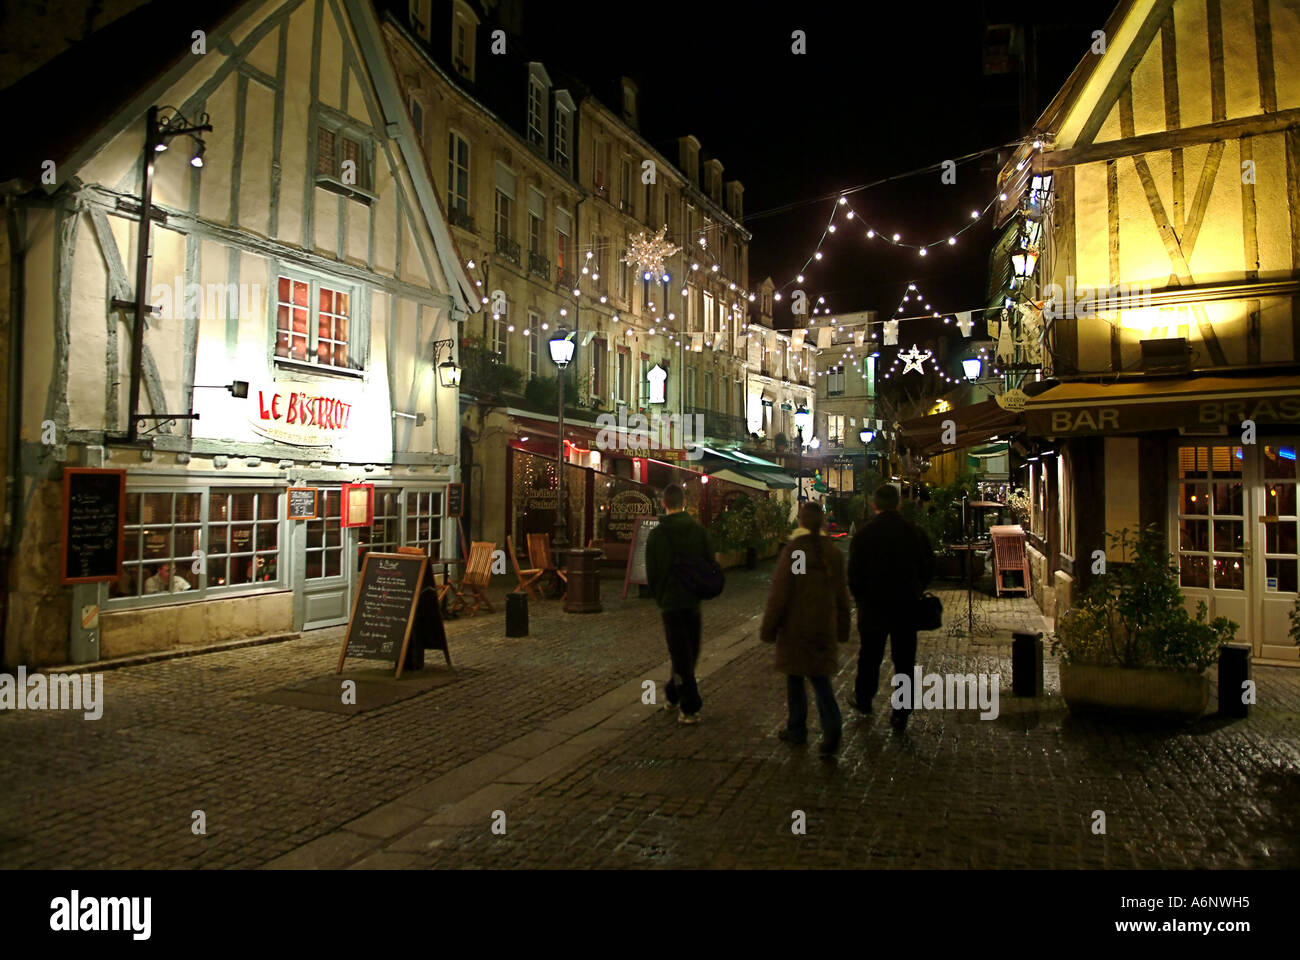 medieval street by night at christmas in caen france stock photo royalty free image 6640596. Black Bedroom Furniture Sets. Home Design Ideas